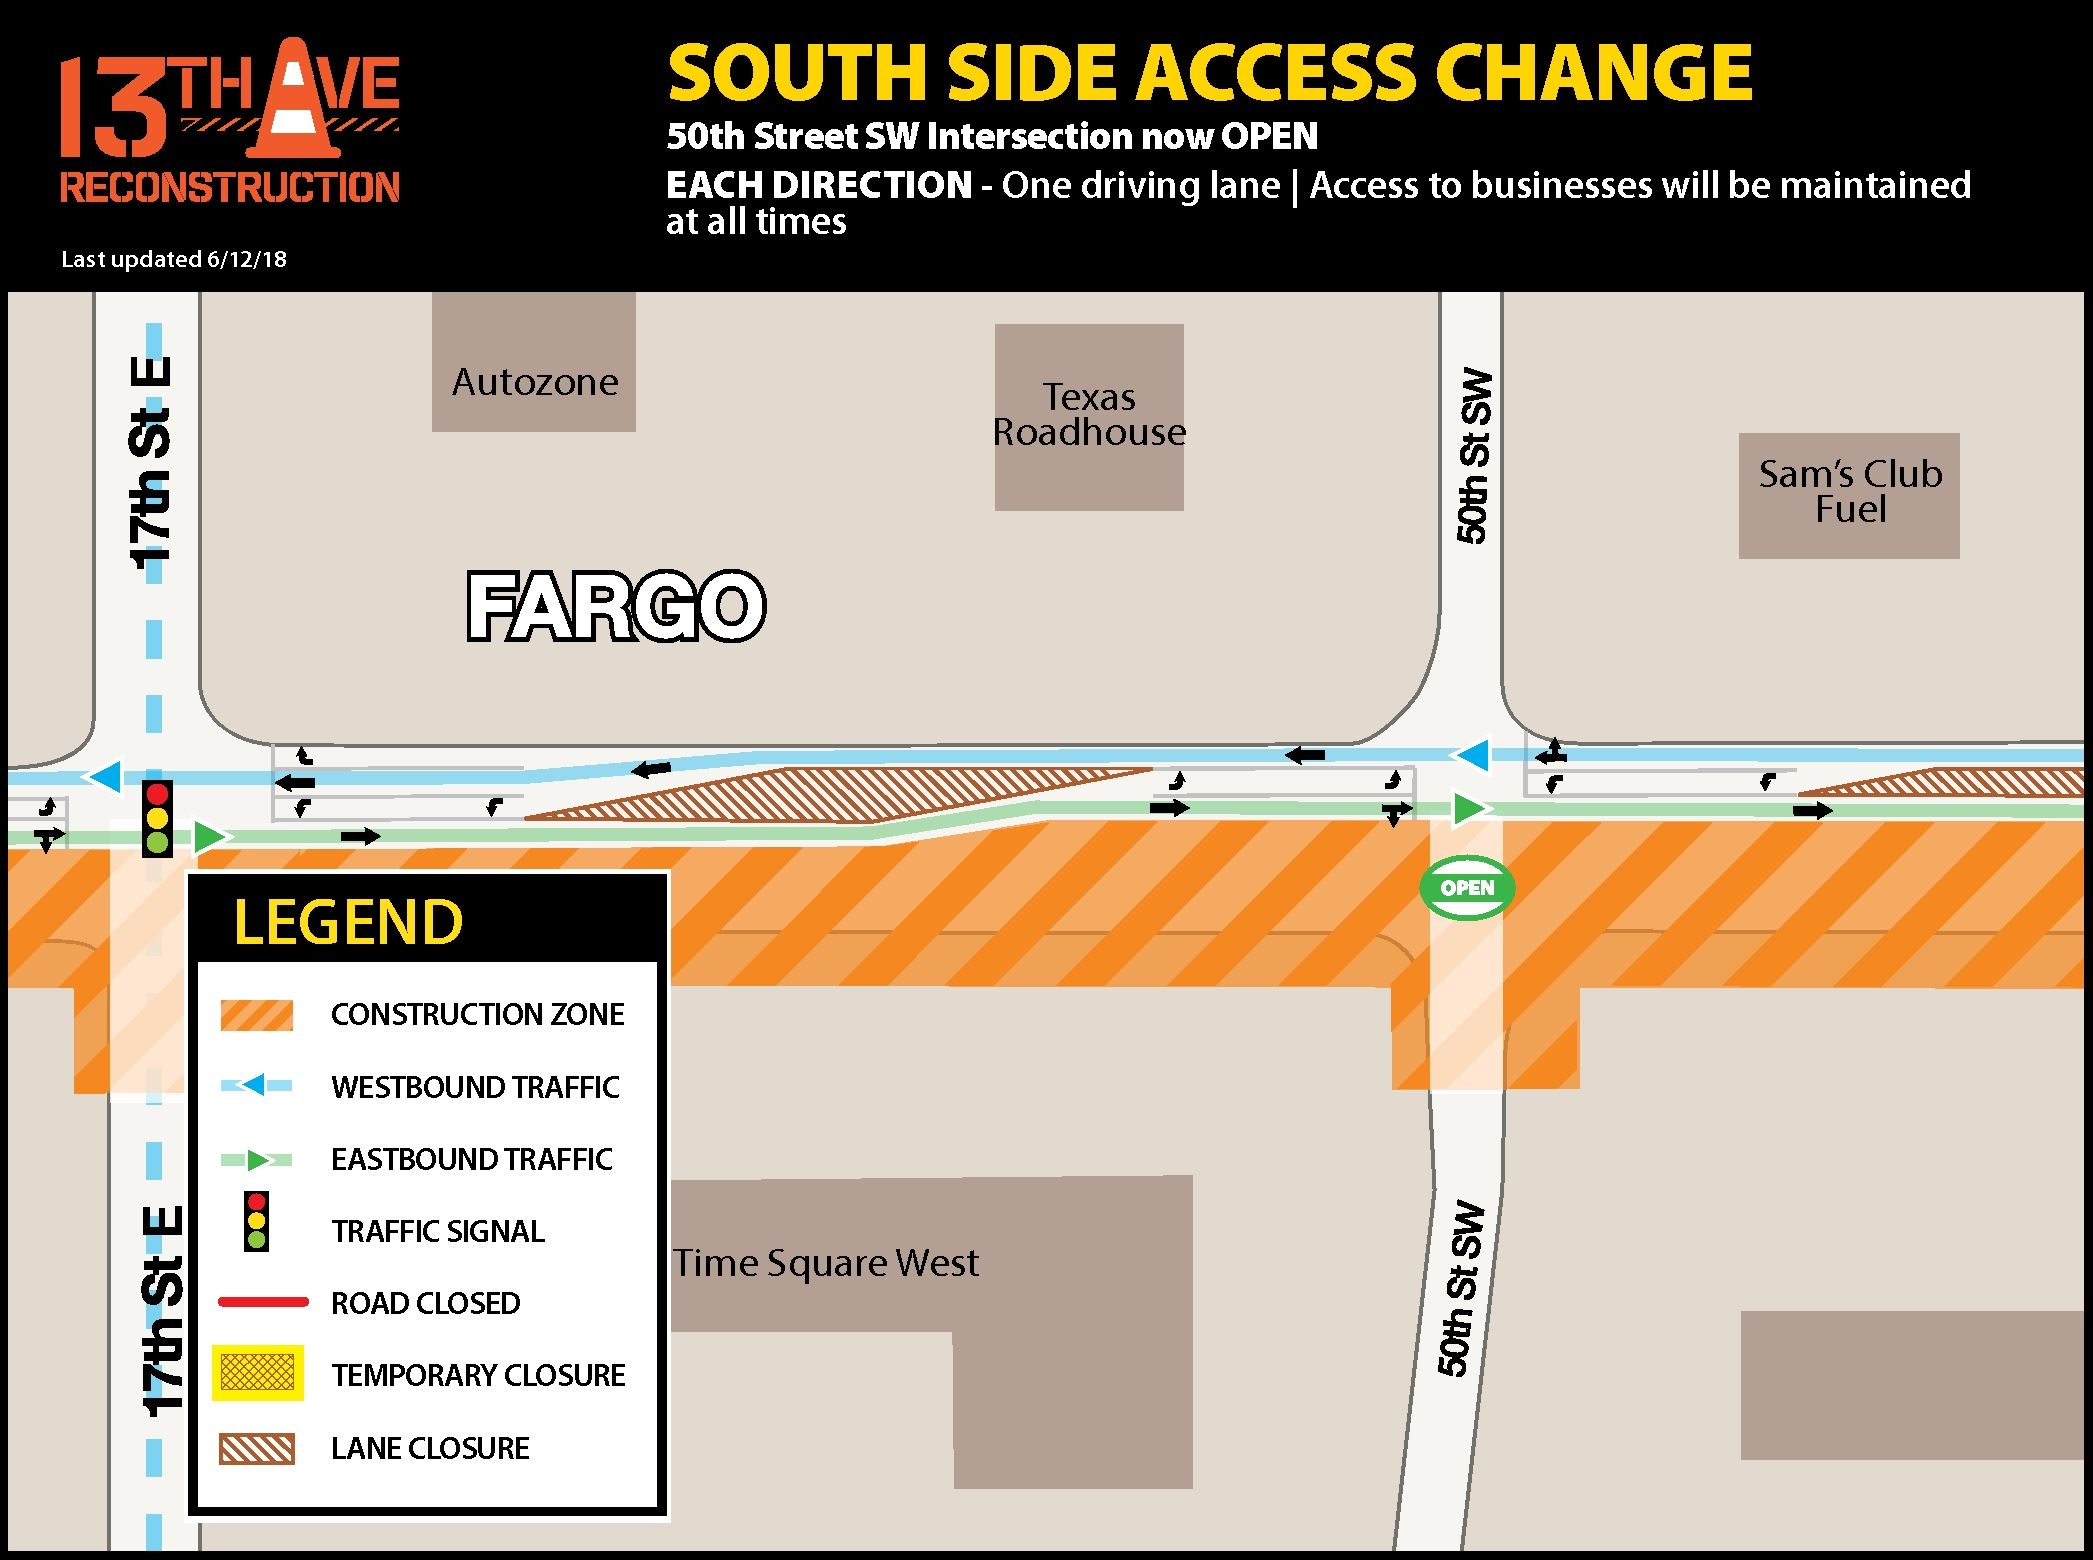 South side access change 50th St SW and 13th Avenue